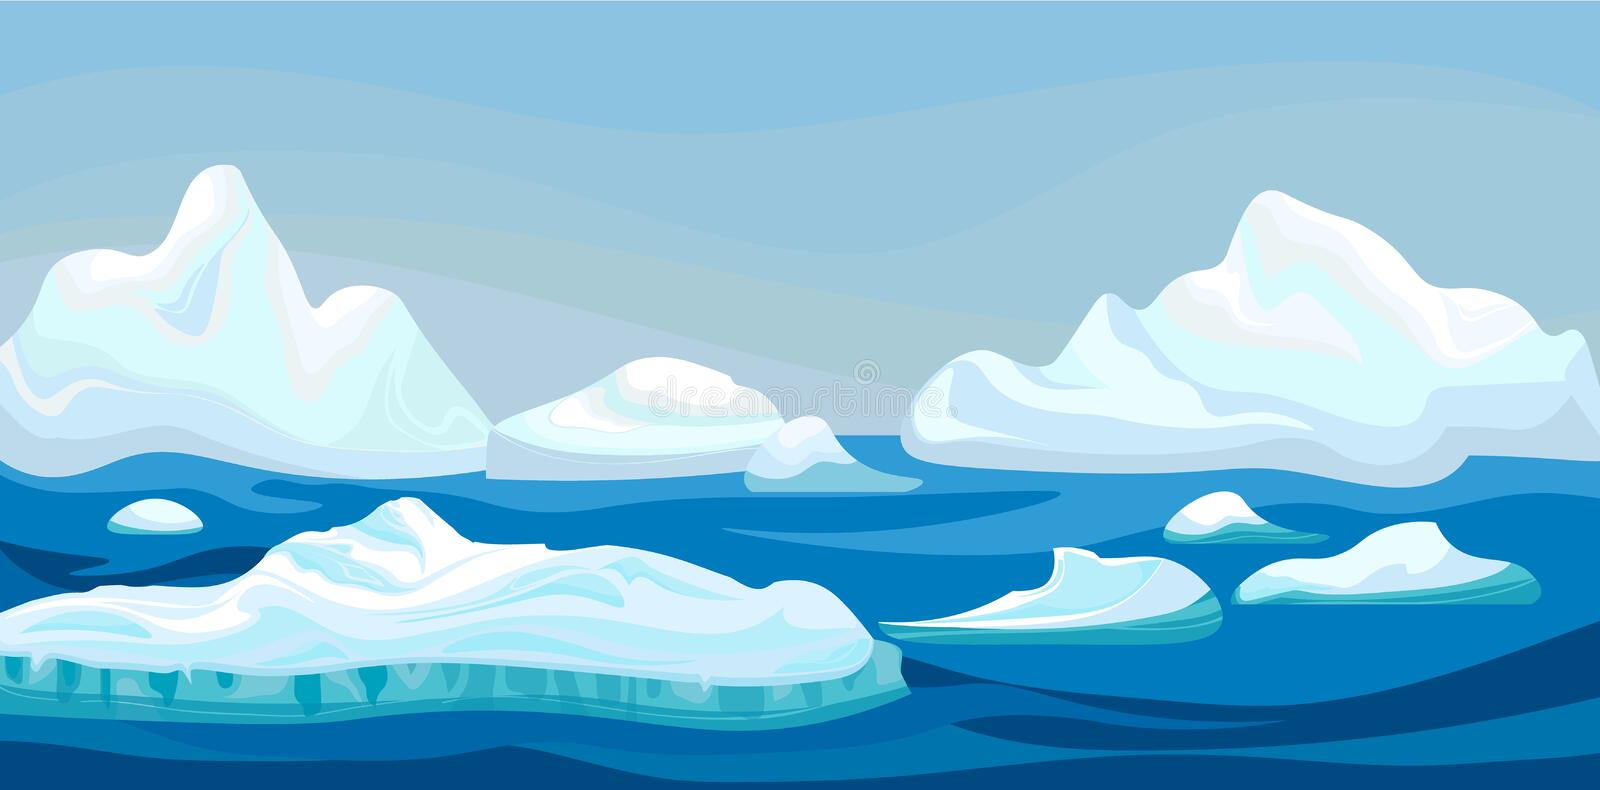 Cartoon arctic iceberg with blue sea, winter landscape. Scene game concept Arctic Ocean and snow mountains. Vector vector illustration